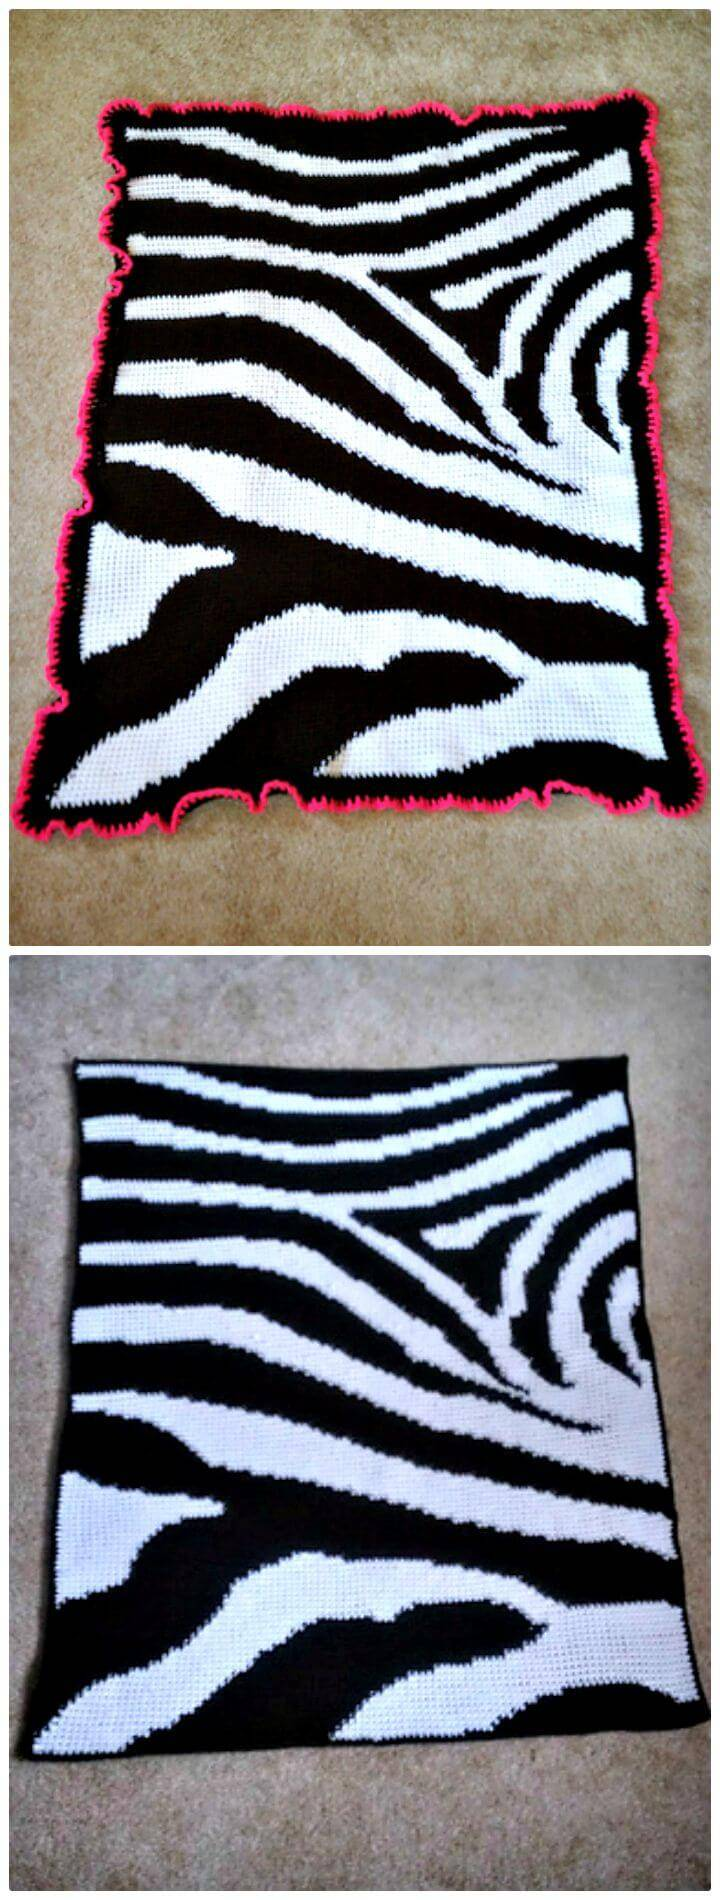 26 Free Crochet Zebra Patterns Hat Blanket Amigurumi Diy Crafts